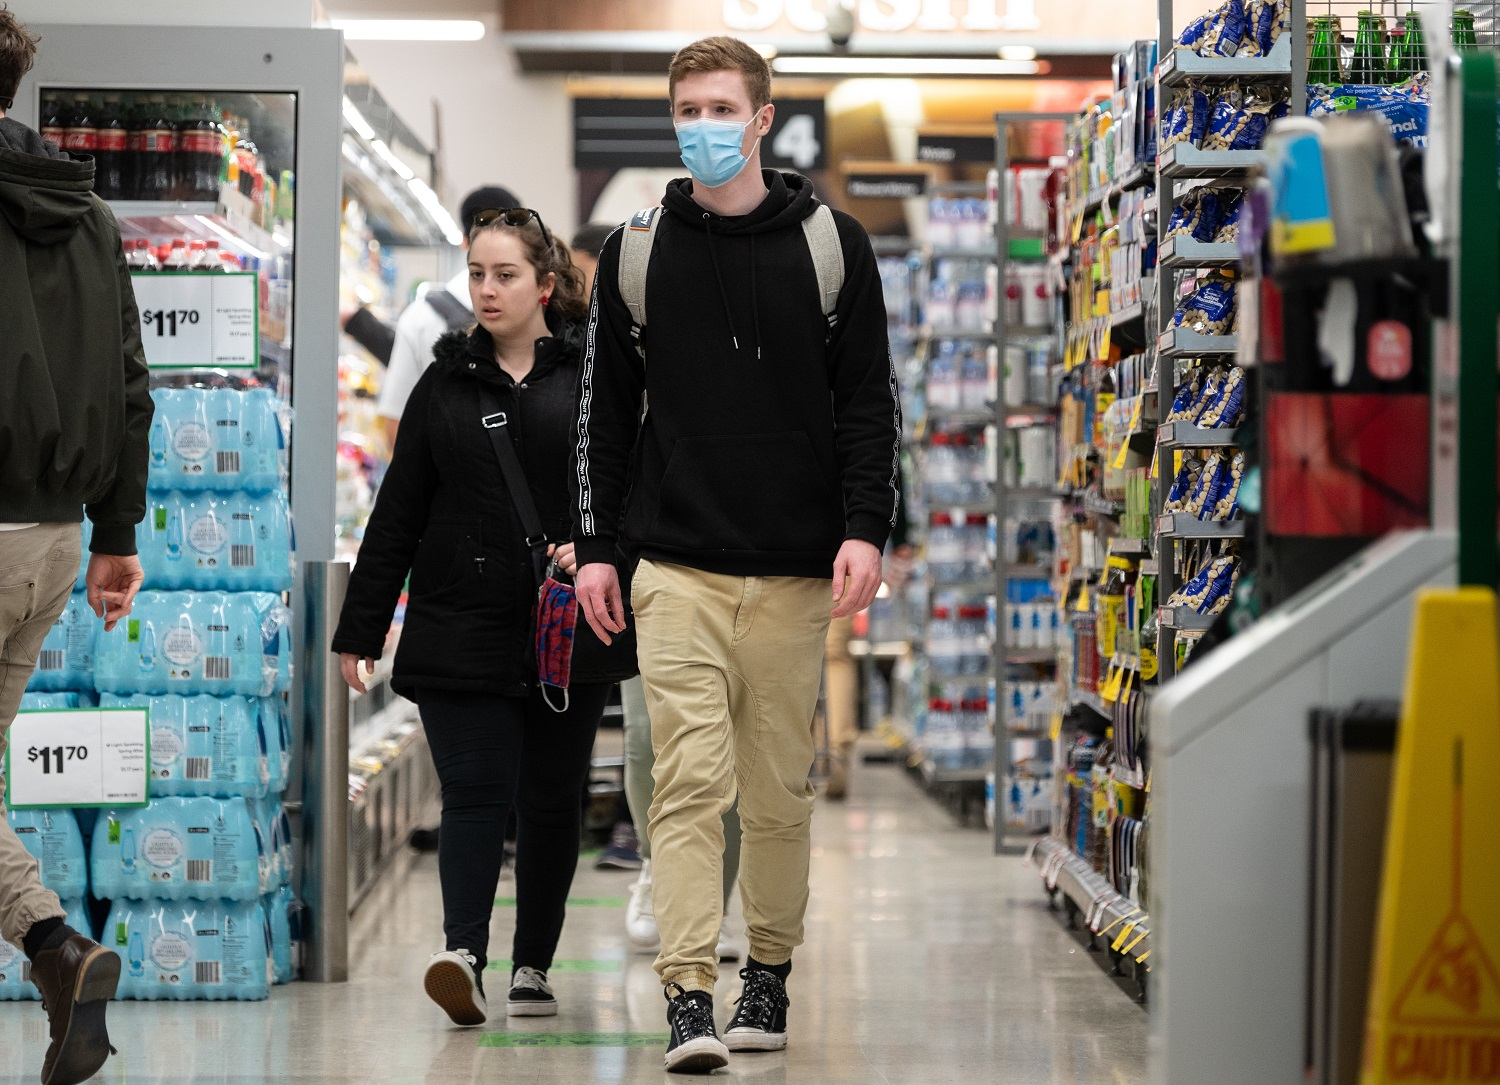 A shopper wearing a face mask inside a Woolworths shop in Sydney, Friday, July 31, 2020. Woolworths are strongly encouraging shoppers in Victoria, NSW and the ACT to wear face masks whilst in store from Monday (3/08). (AAP Image/James Gourley) NO ARCHIVINGNo Use Australia. No Use New Zealand.